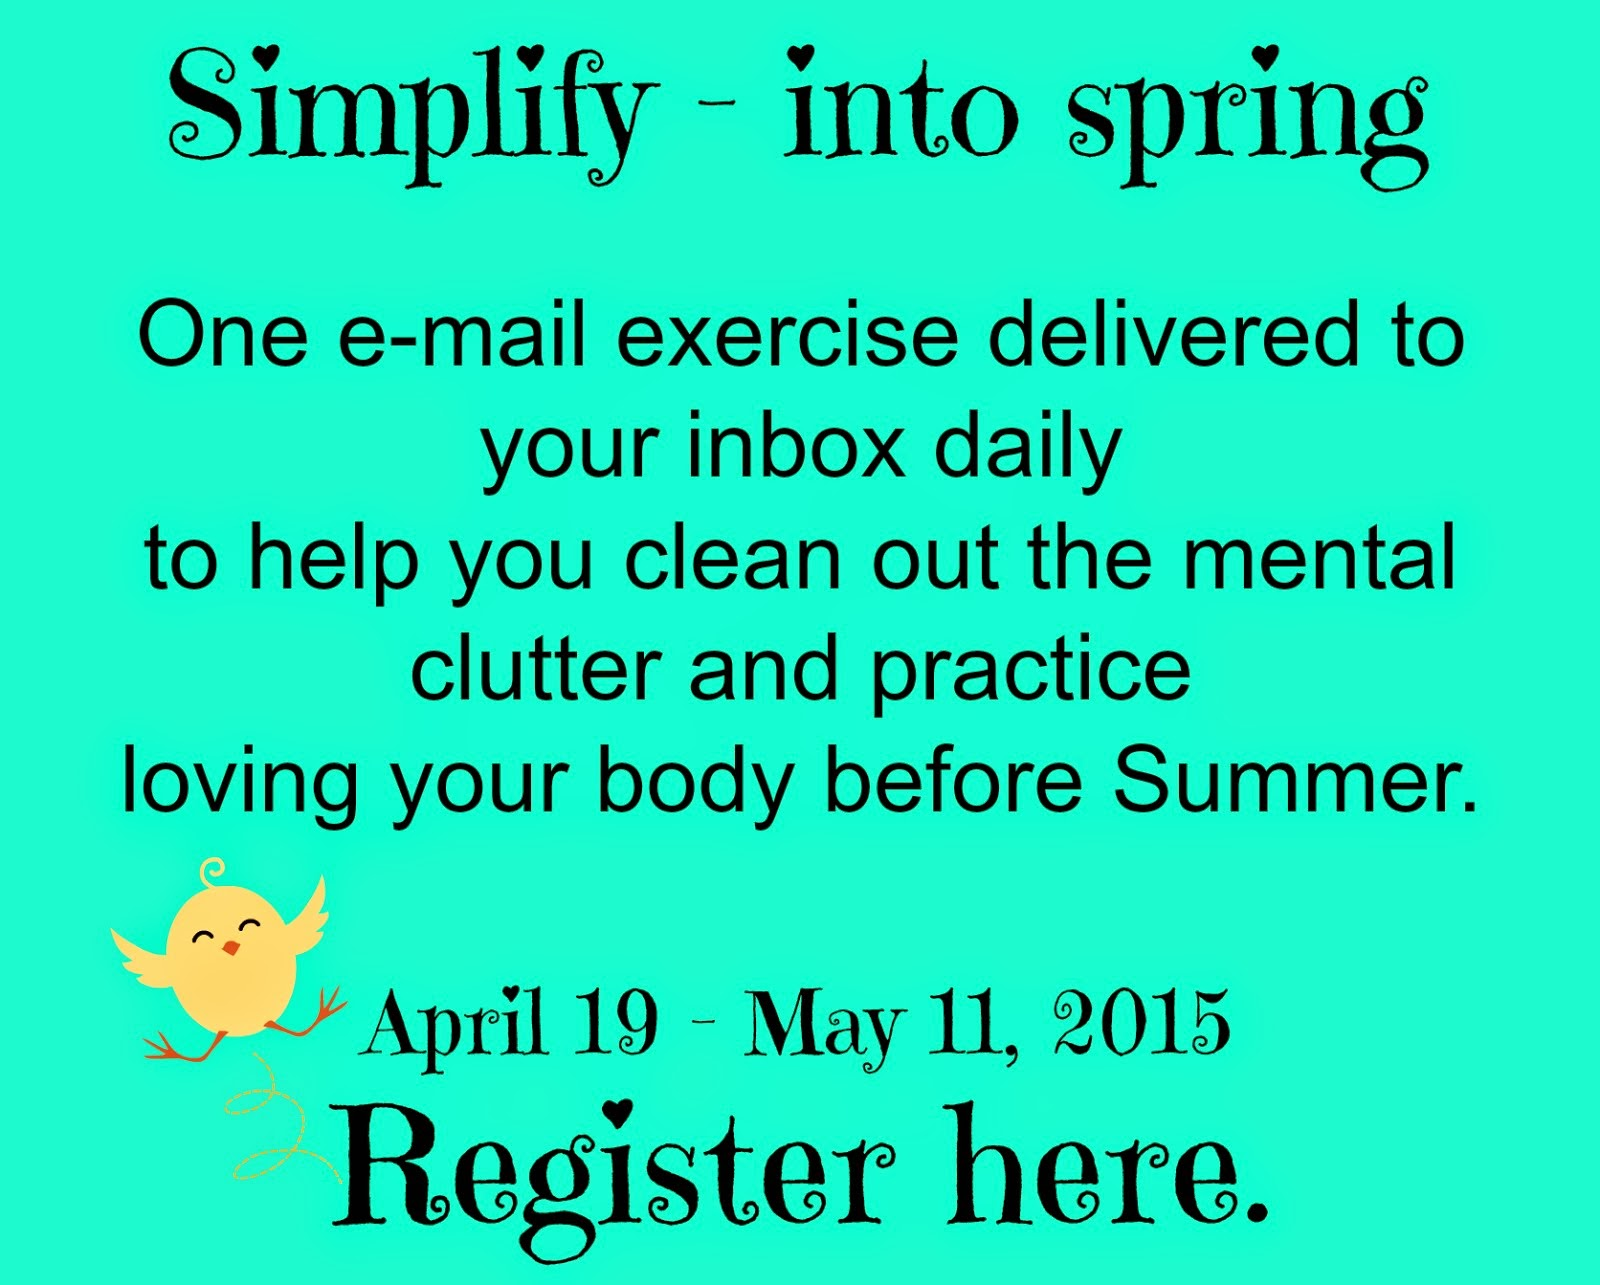 Learn more about Simplifying your life for spring.